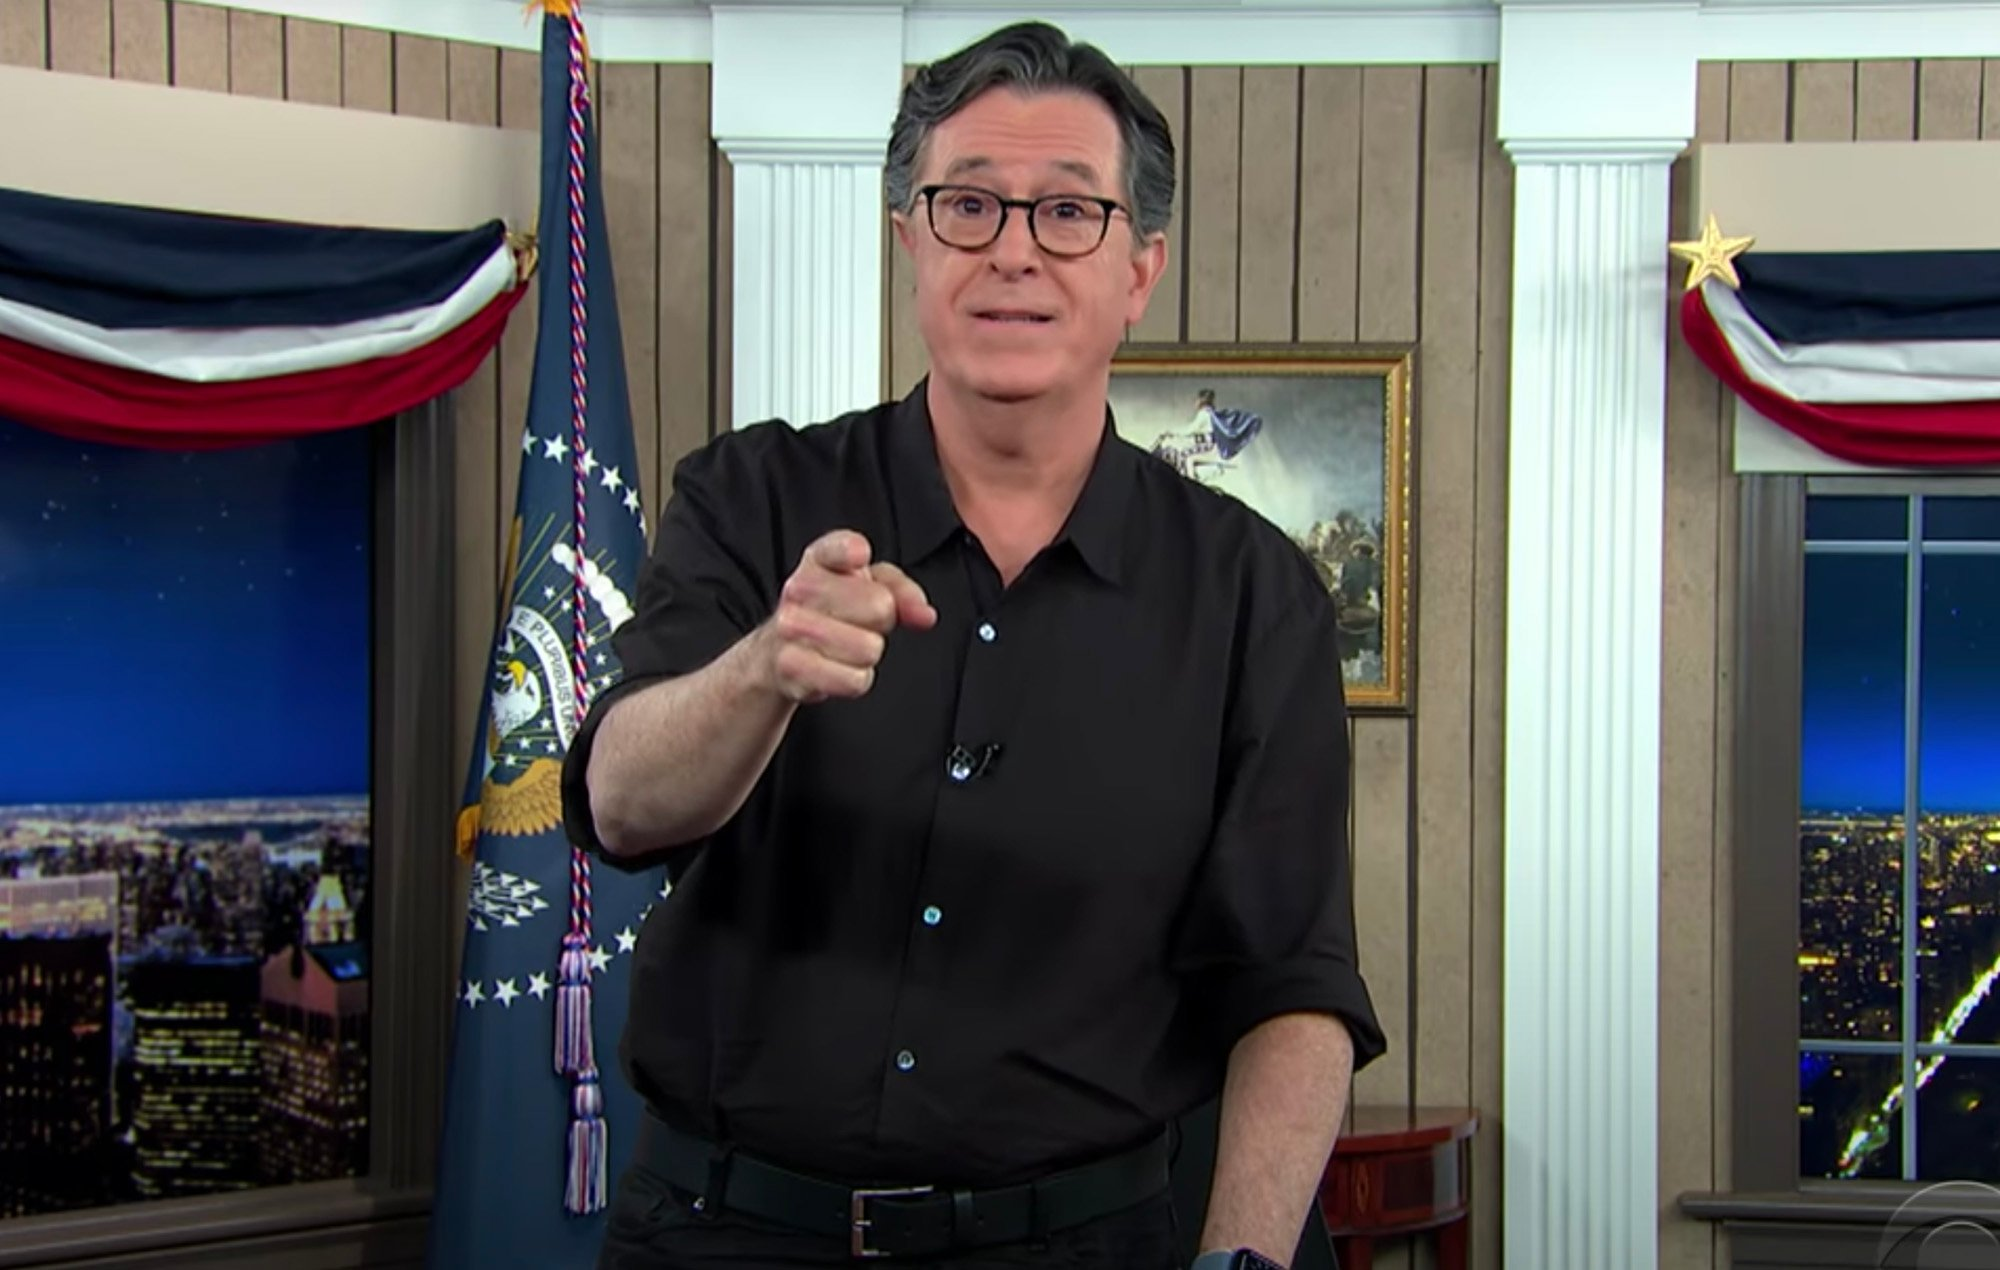 Stephen Colbert Gets Emotional After Donald Trump's 'Nonsensical' Speech – Says He Tried To 'Kill Democracy' And More!